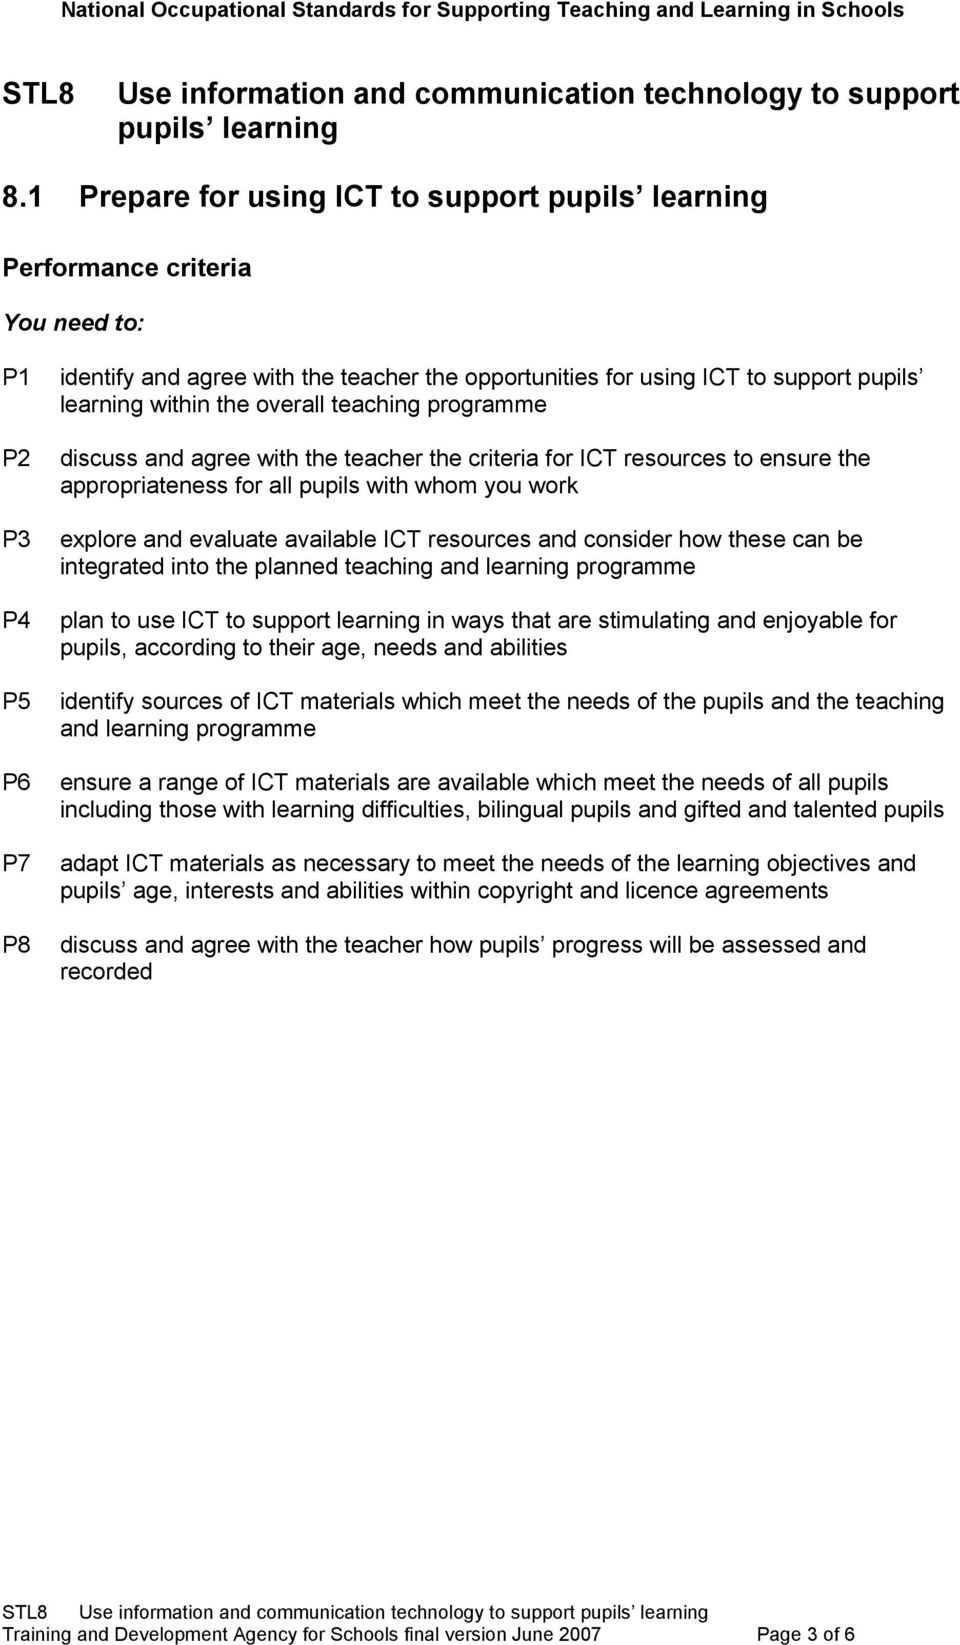 resources and consider how these can be integrated into the planned teaching and learning programme plan to use ICT to support learning in ways that are stimulating and enjoyable for pupils,